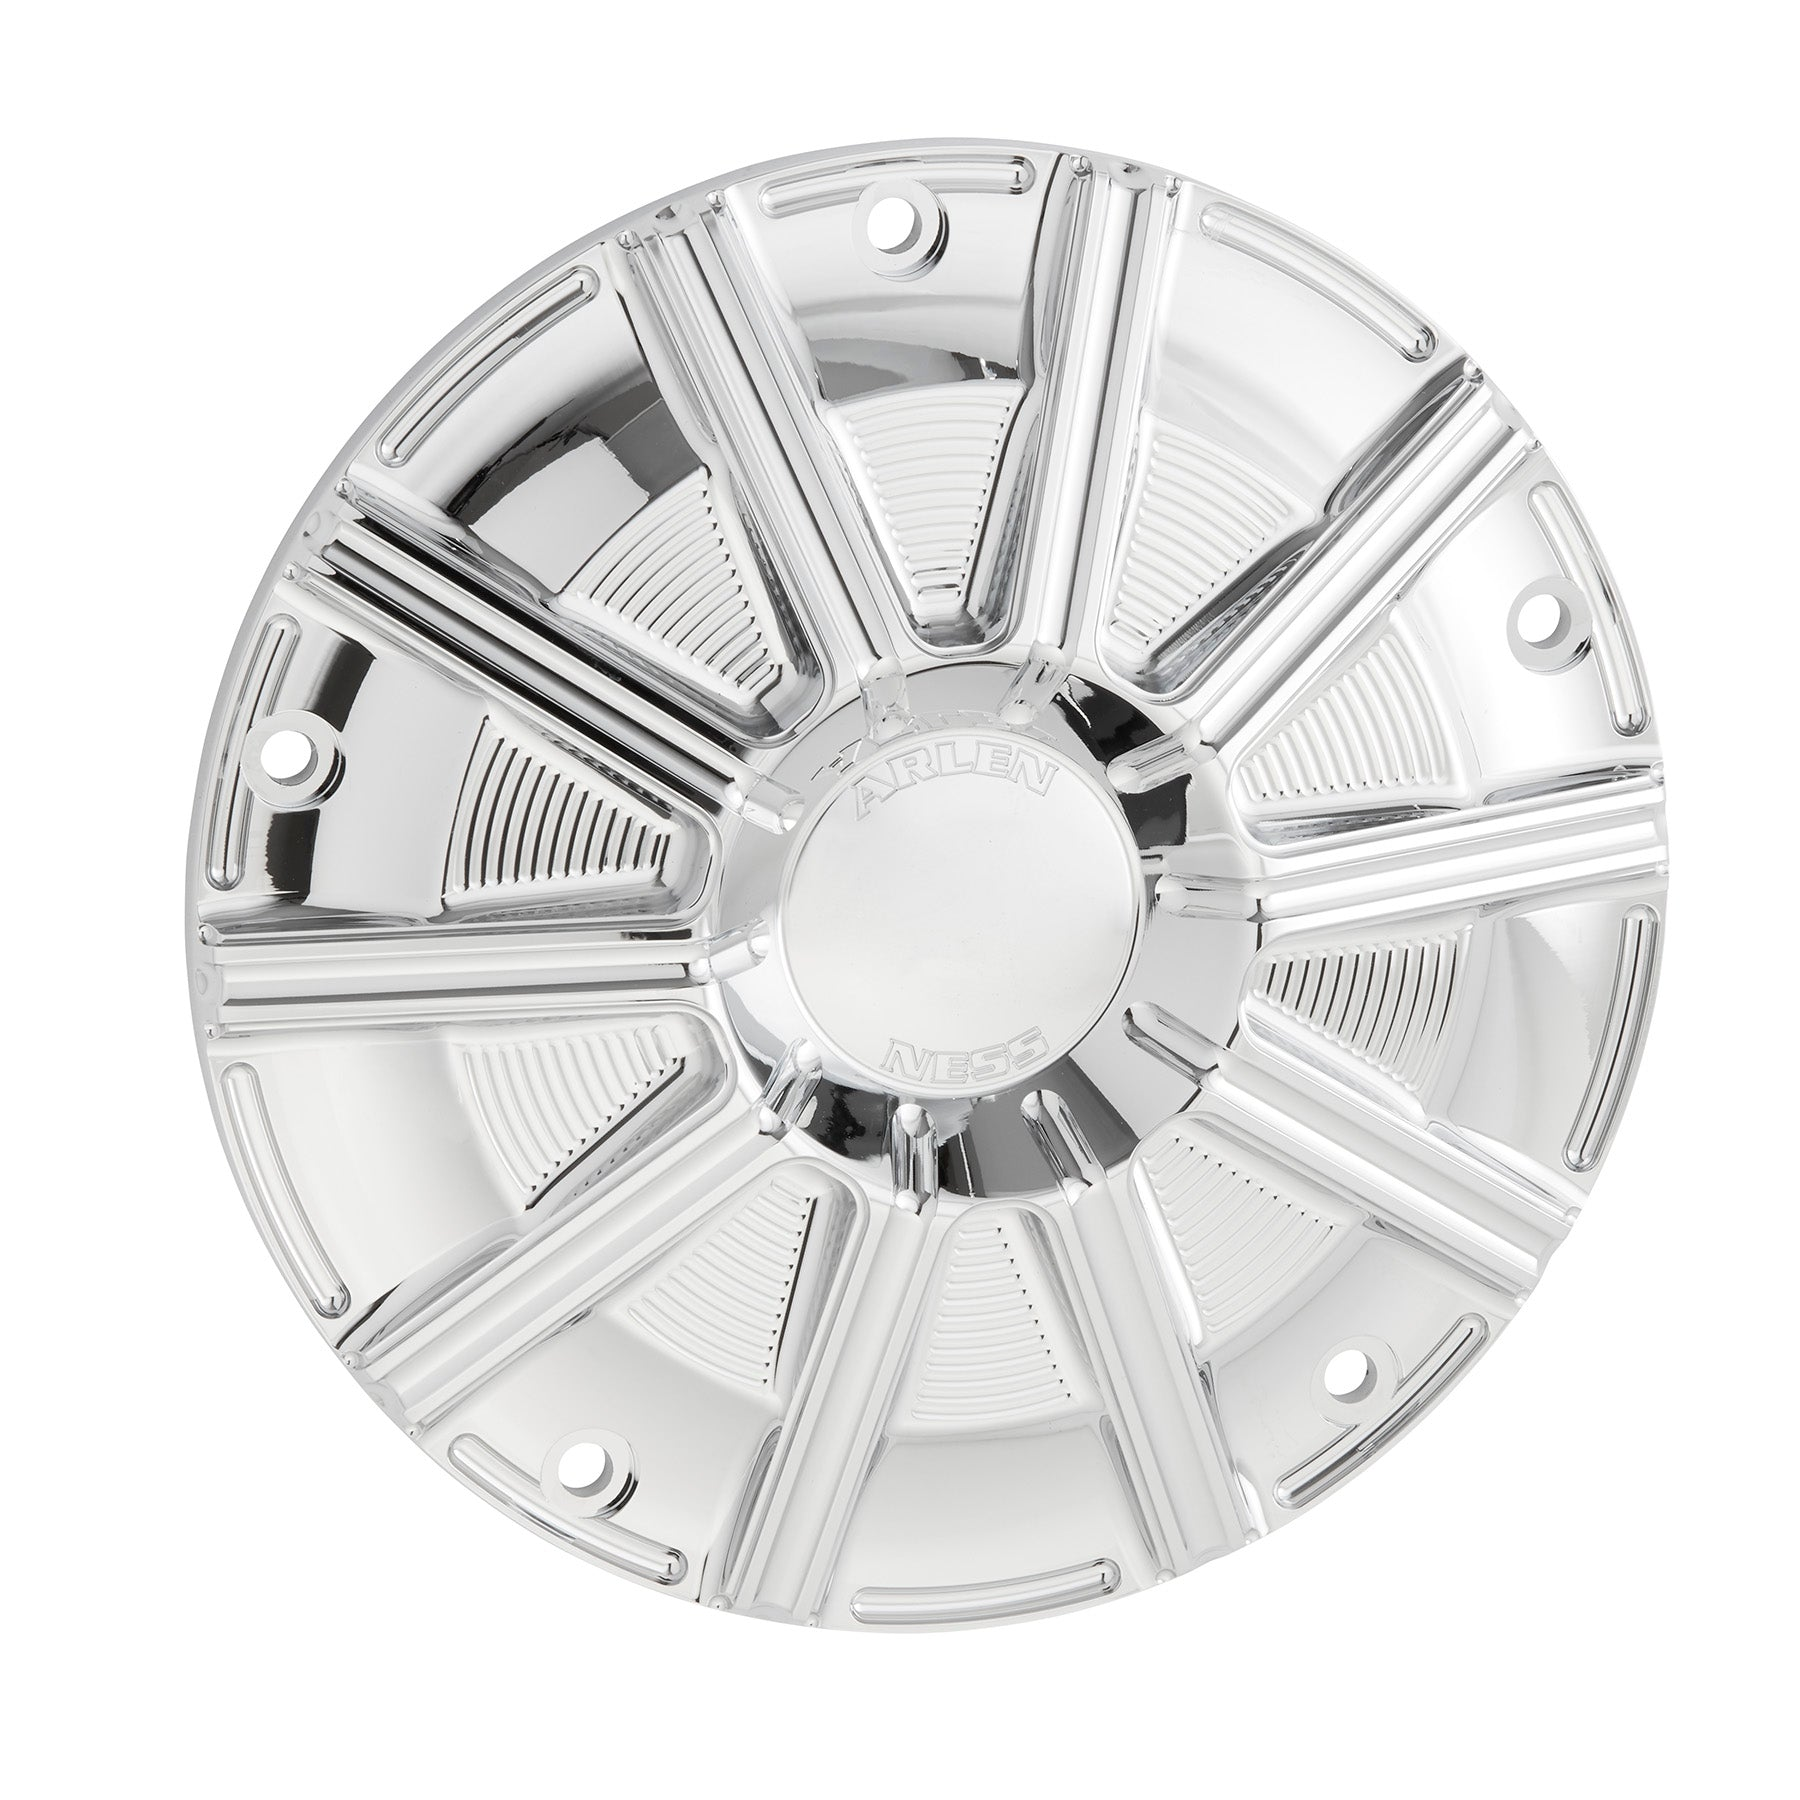 10-Gauge Derby Cover, Chrome